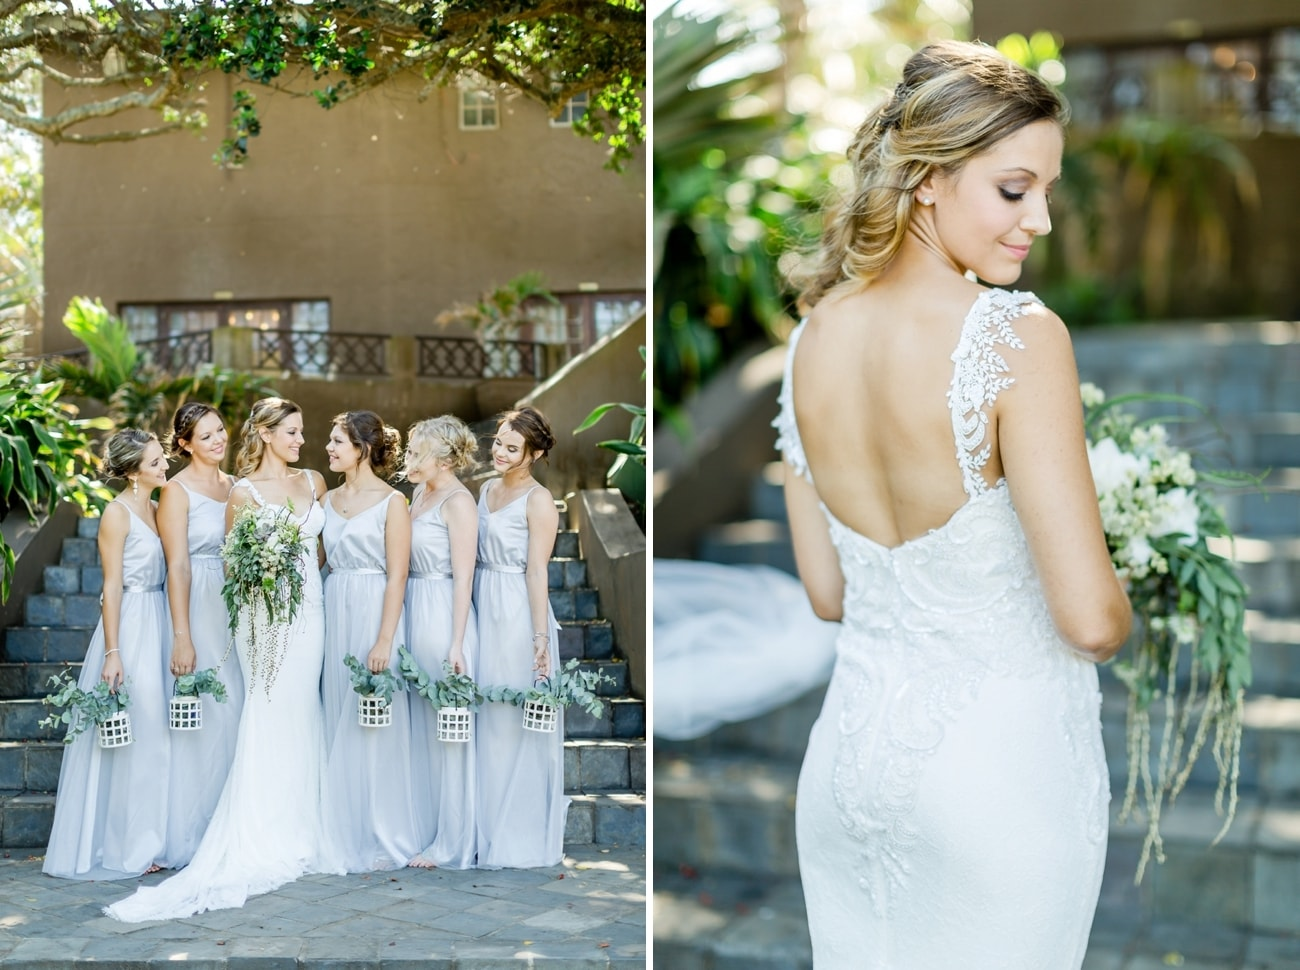 Pastel Grey Bridesmaid Dresses | Credit: Grace Studios / Absolute Perfection